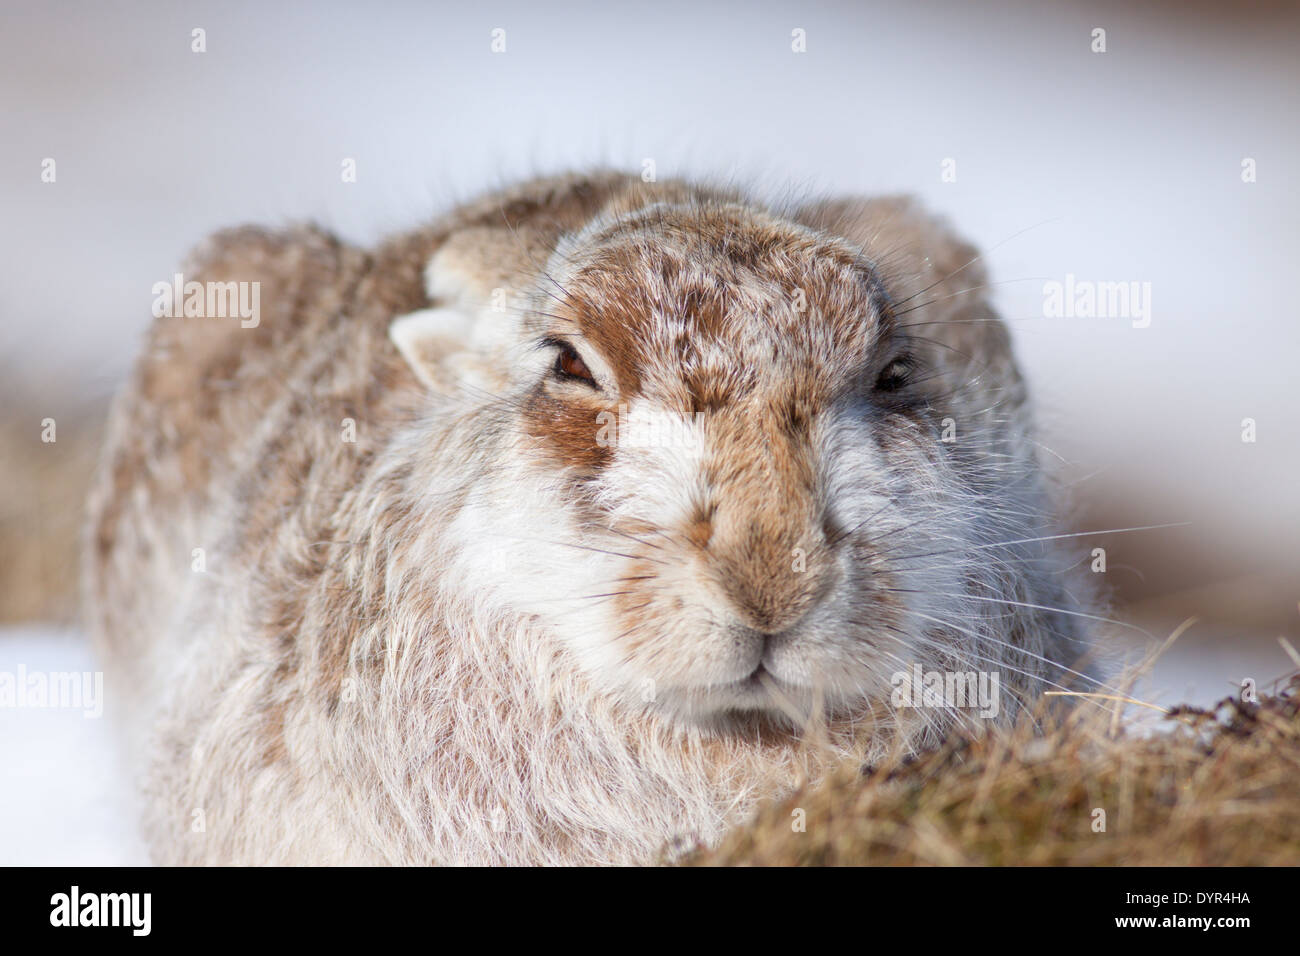 Mountain Hare (Lepus timidus), Highlands, Scotland, UK - Stock Image